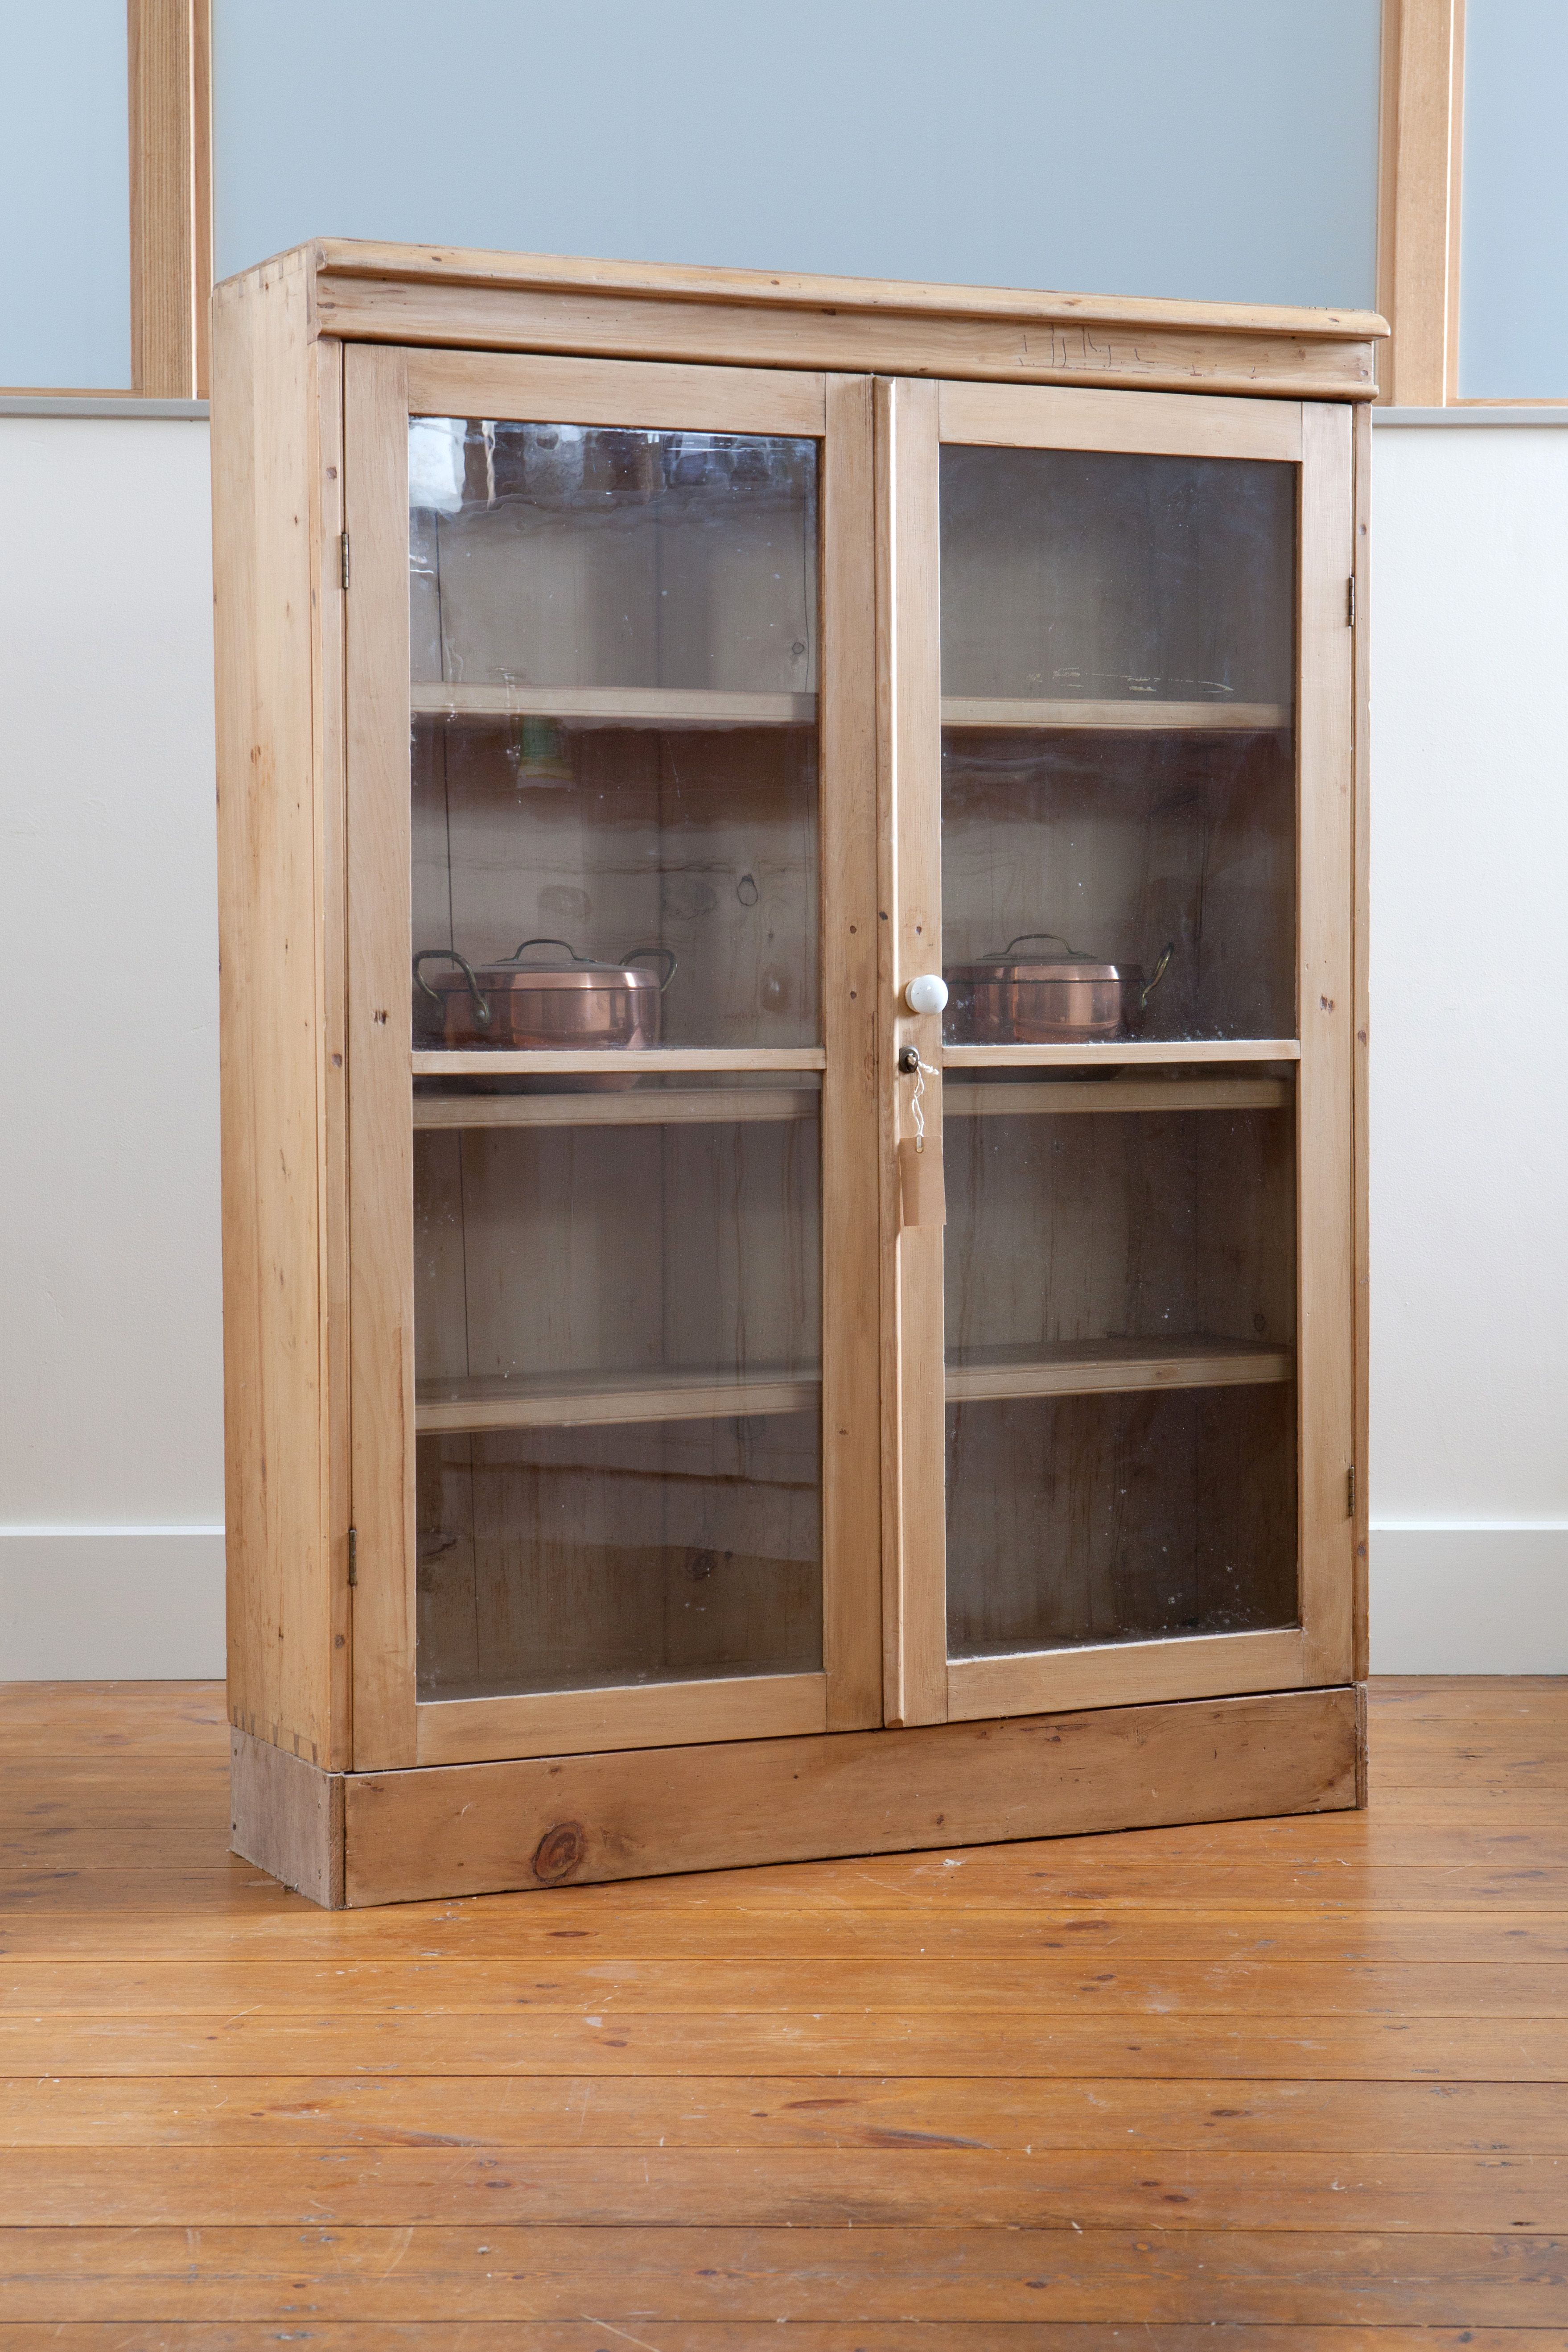 Antique Pine Display Cabinet With Glass Doors Gorgeous And Functional A Winning Combination Glass Cabinets Display Glass Cabinet Doors Display Cabinet